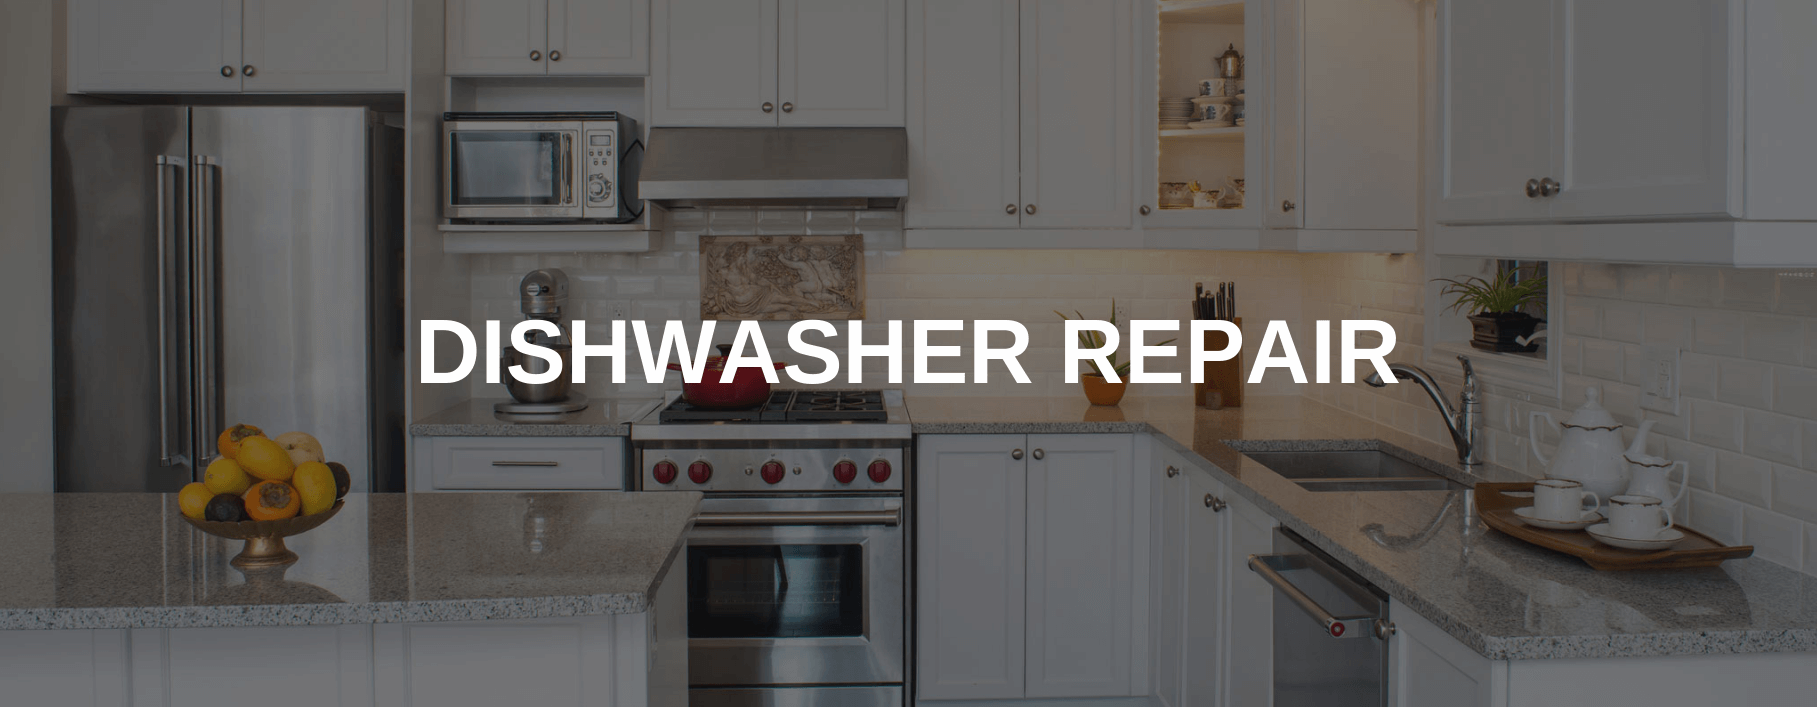 dishwasher repair elizabeth